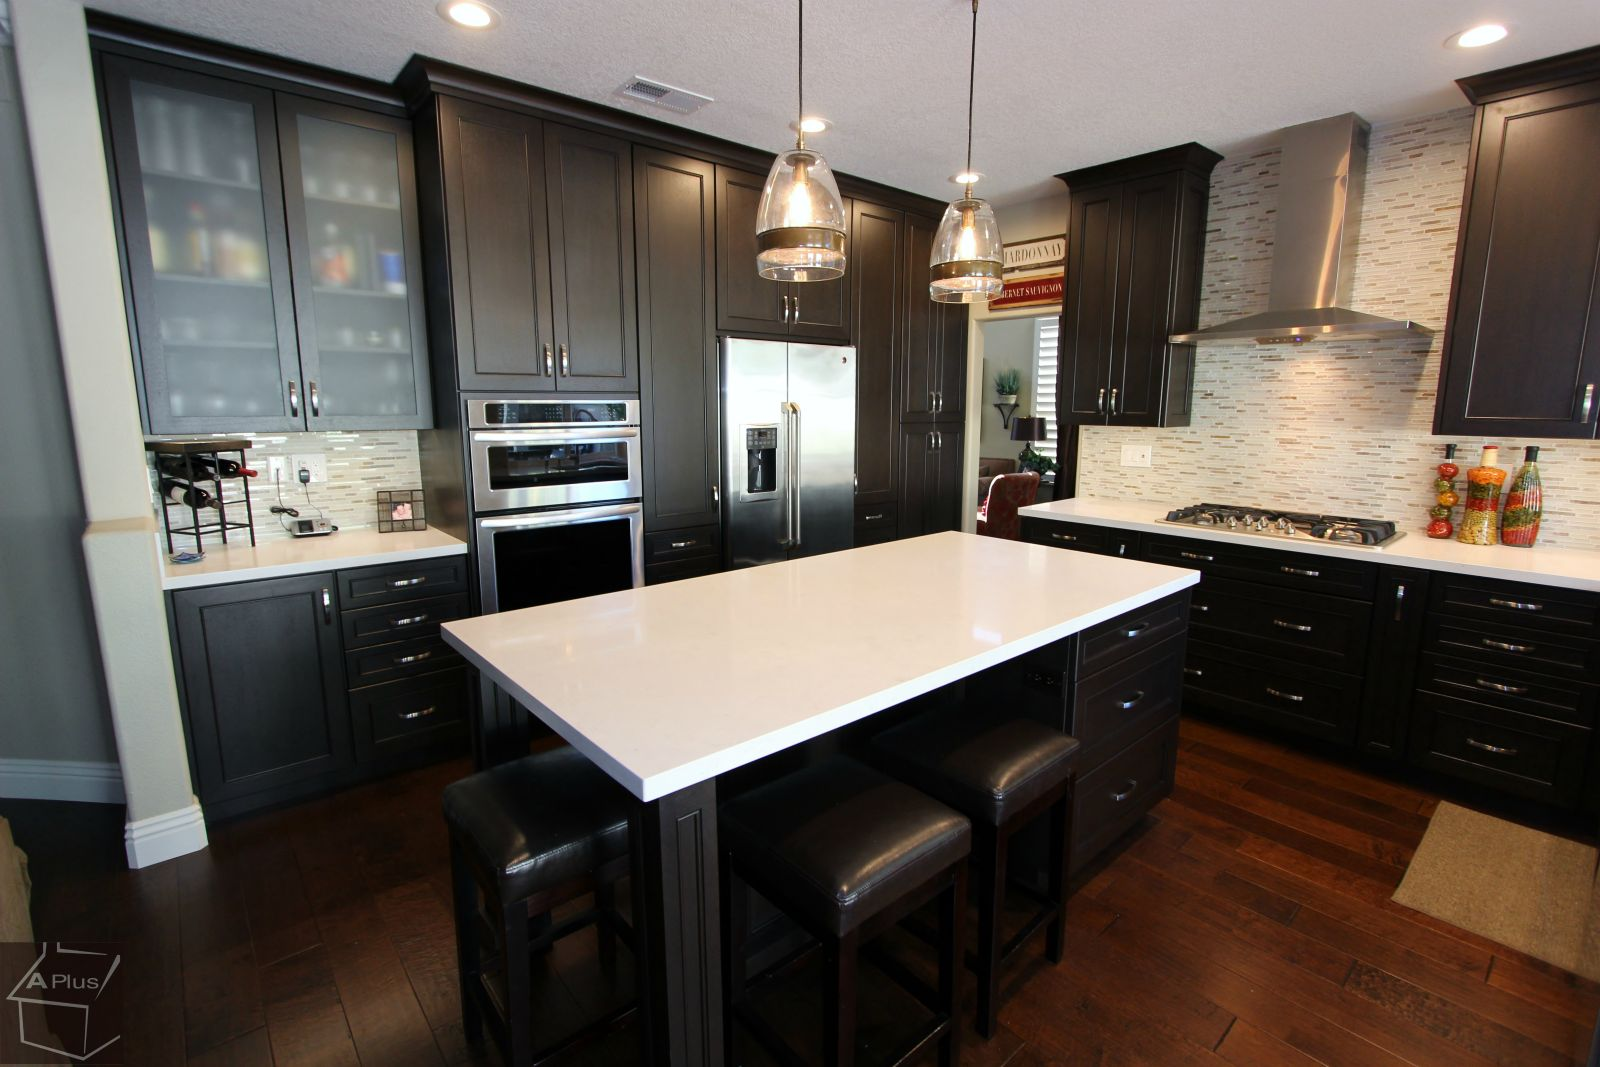 Aplus project Foothill Ranch Complete Kitchen Remodel